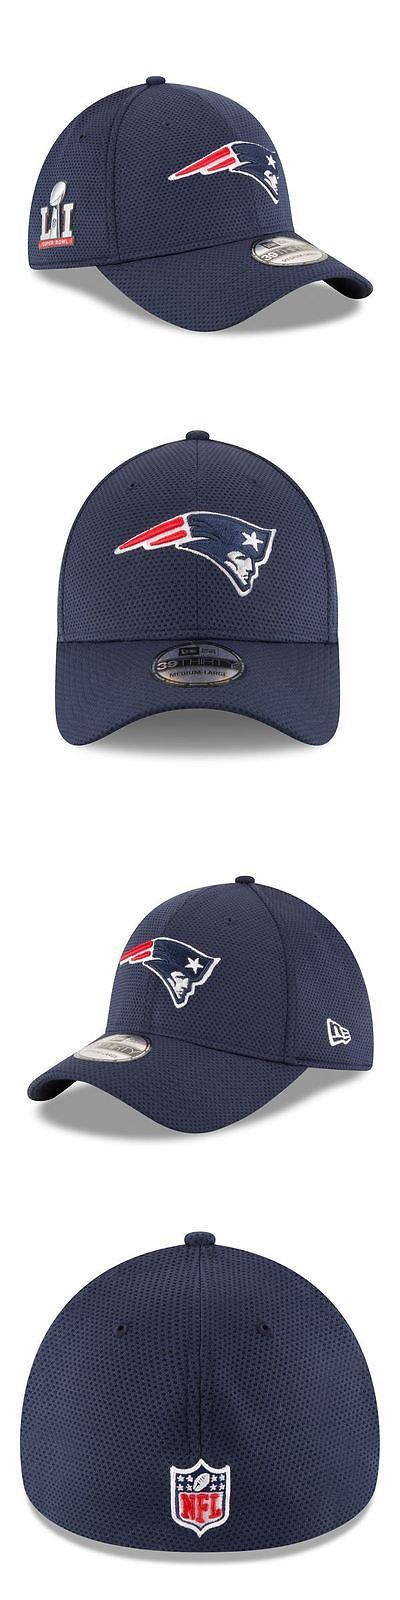 Helmets and Hats 21222: Nfl New England Patriots Super Bowl Li Sidepatch Sideline Tech 39Thirty Flex Hat -> BUY IT NOW ONLY: $36 on eBay!